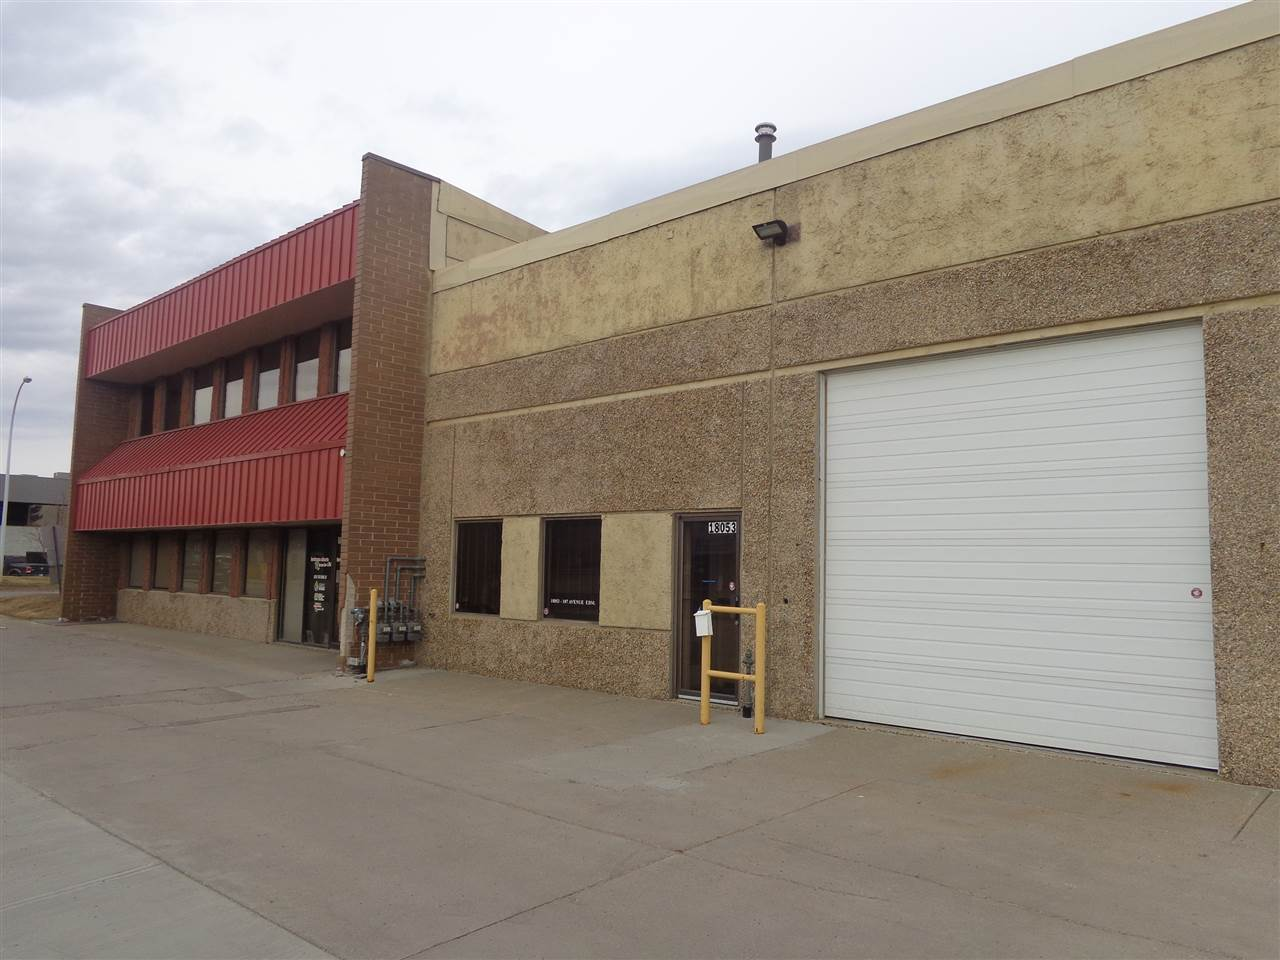 2318  Square Feet of usable space (1492 Main + 825 Upper) in Wilson Industrial. This space is perfect for office, retail or industrial use. This unit has 3 phase power with an upgraded panel. Two bathrooms on the main level. 12 foot Garage Bay door. 4 stalls come with this space as well.